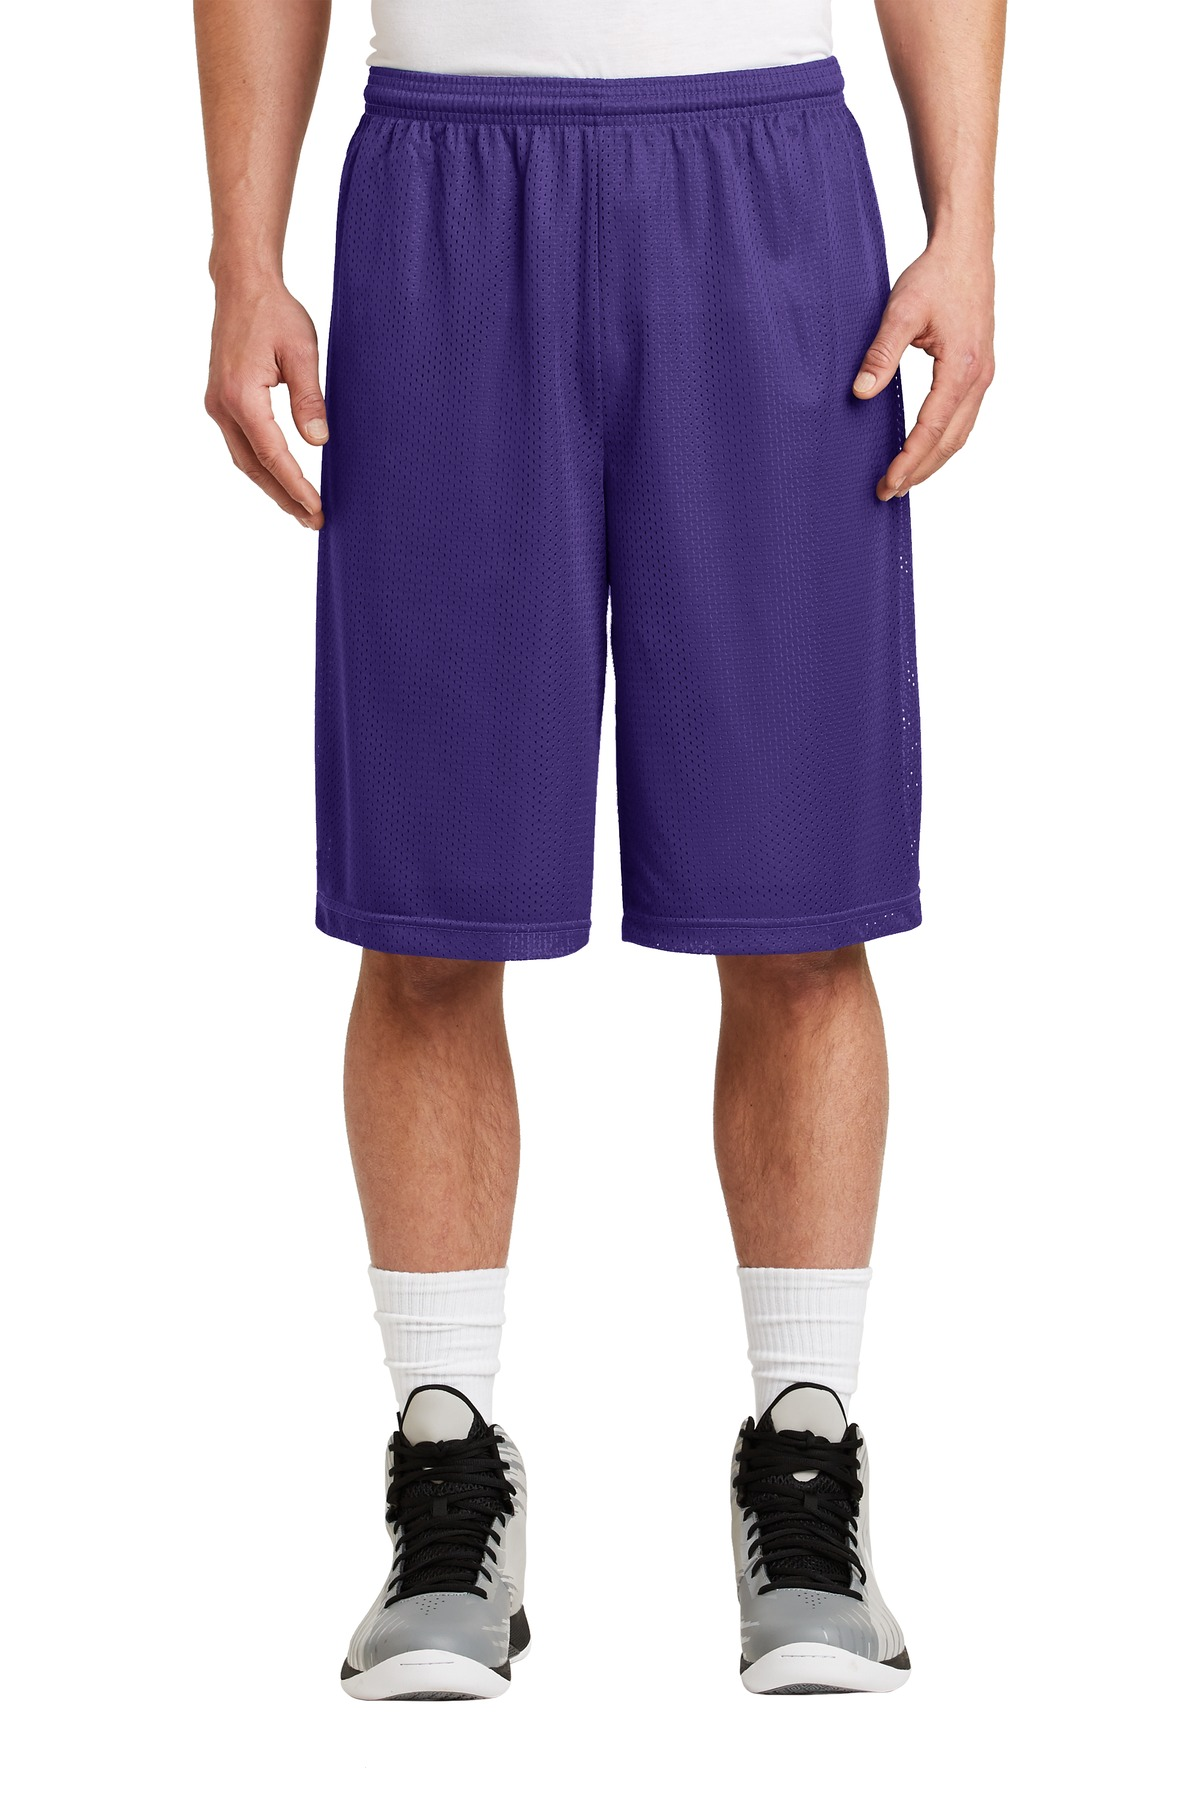 DISCONTINUED Sport-Tek Extra Long PosiCharge Classic Mesh Short. ST511